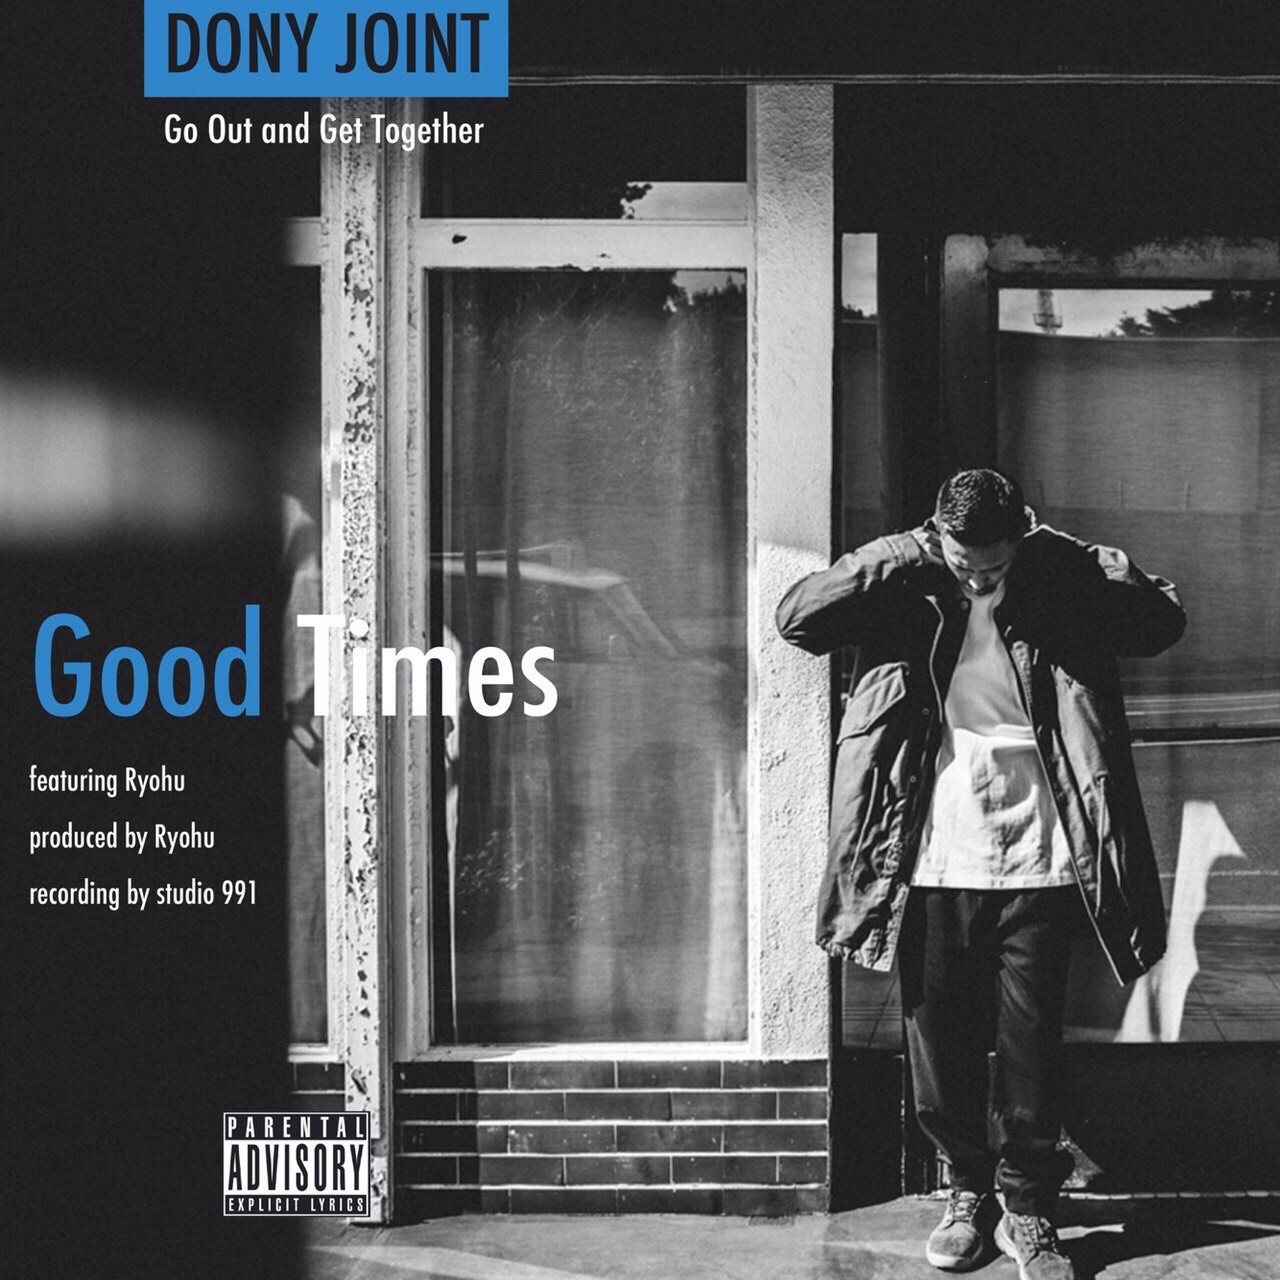 Dony Joint